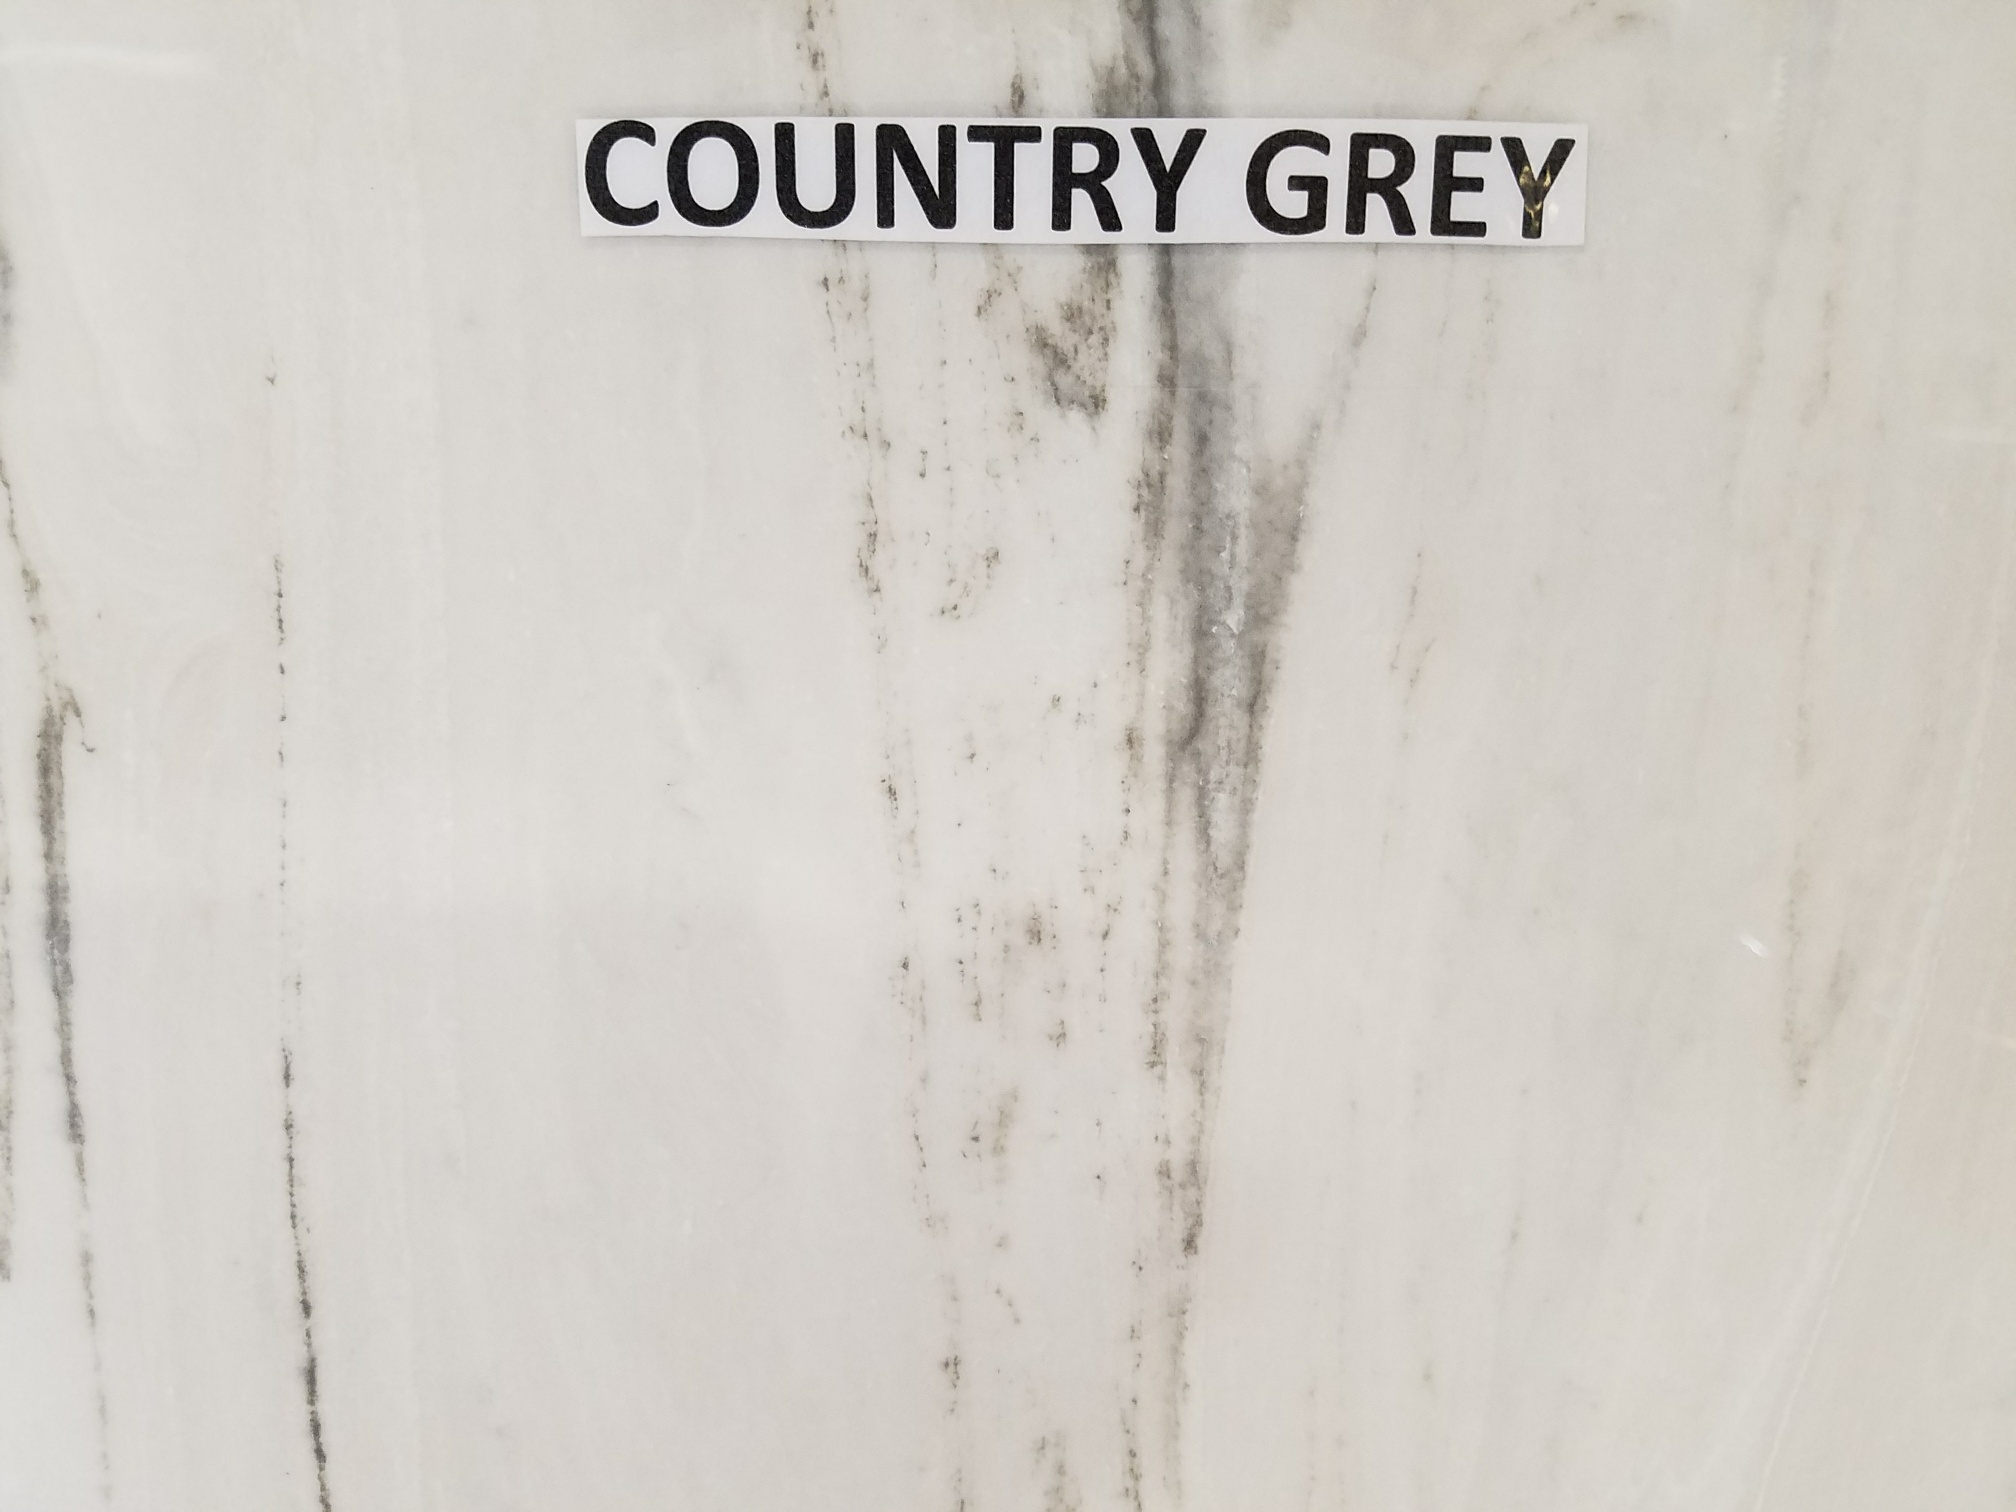 COUNTRY GREY